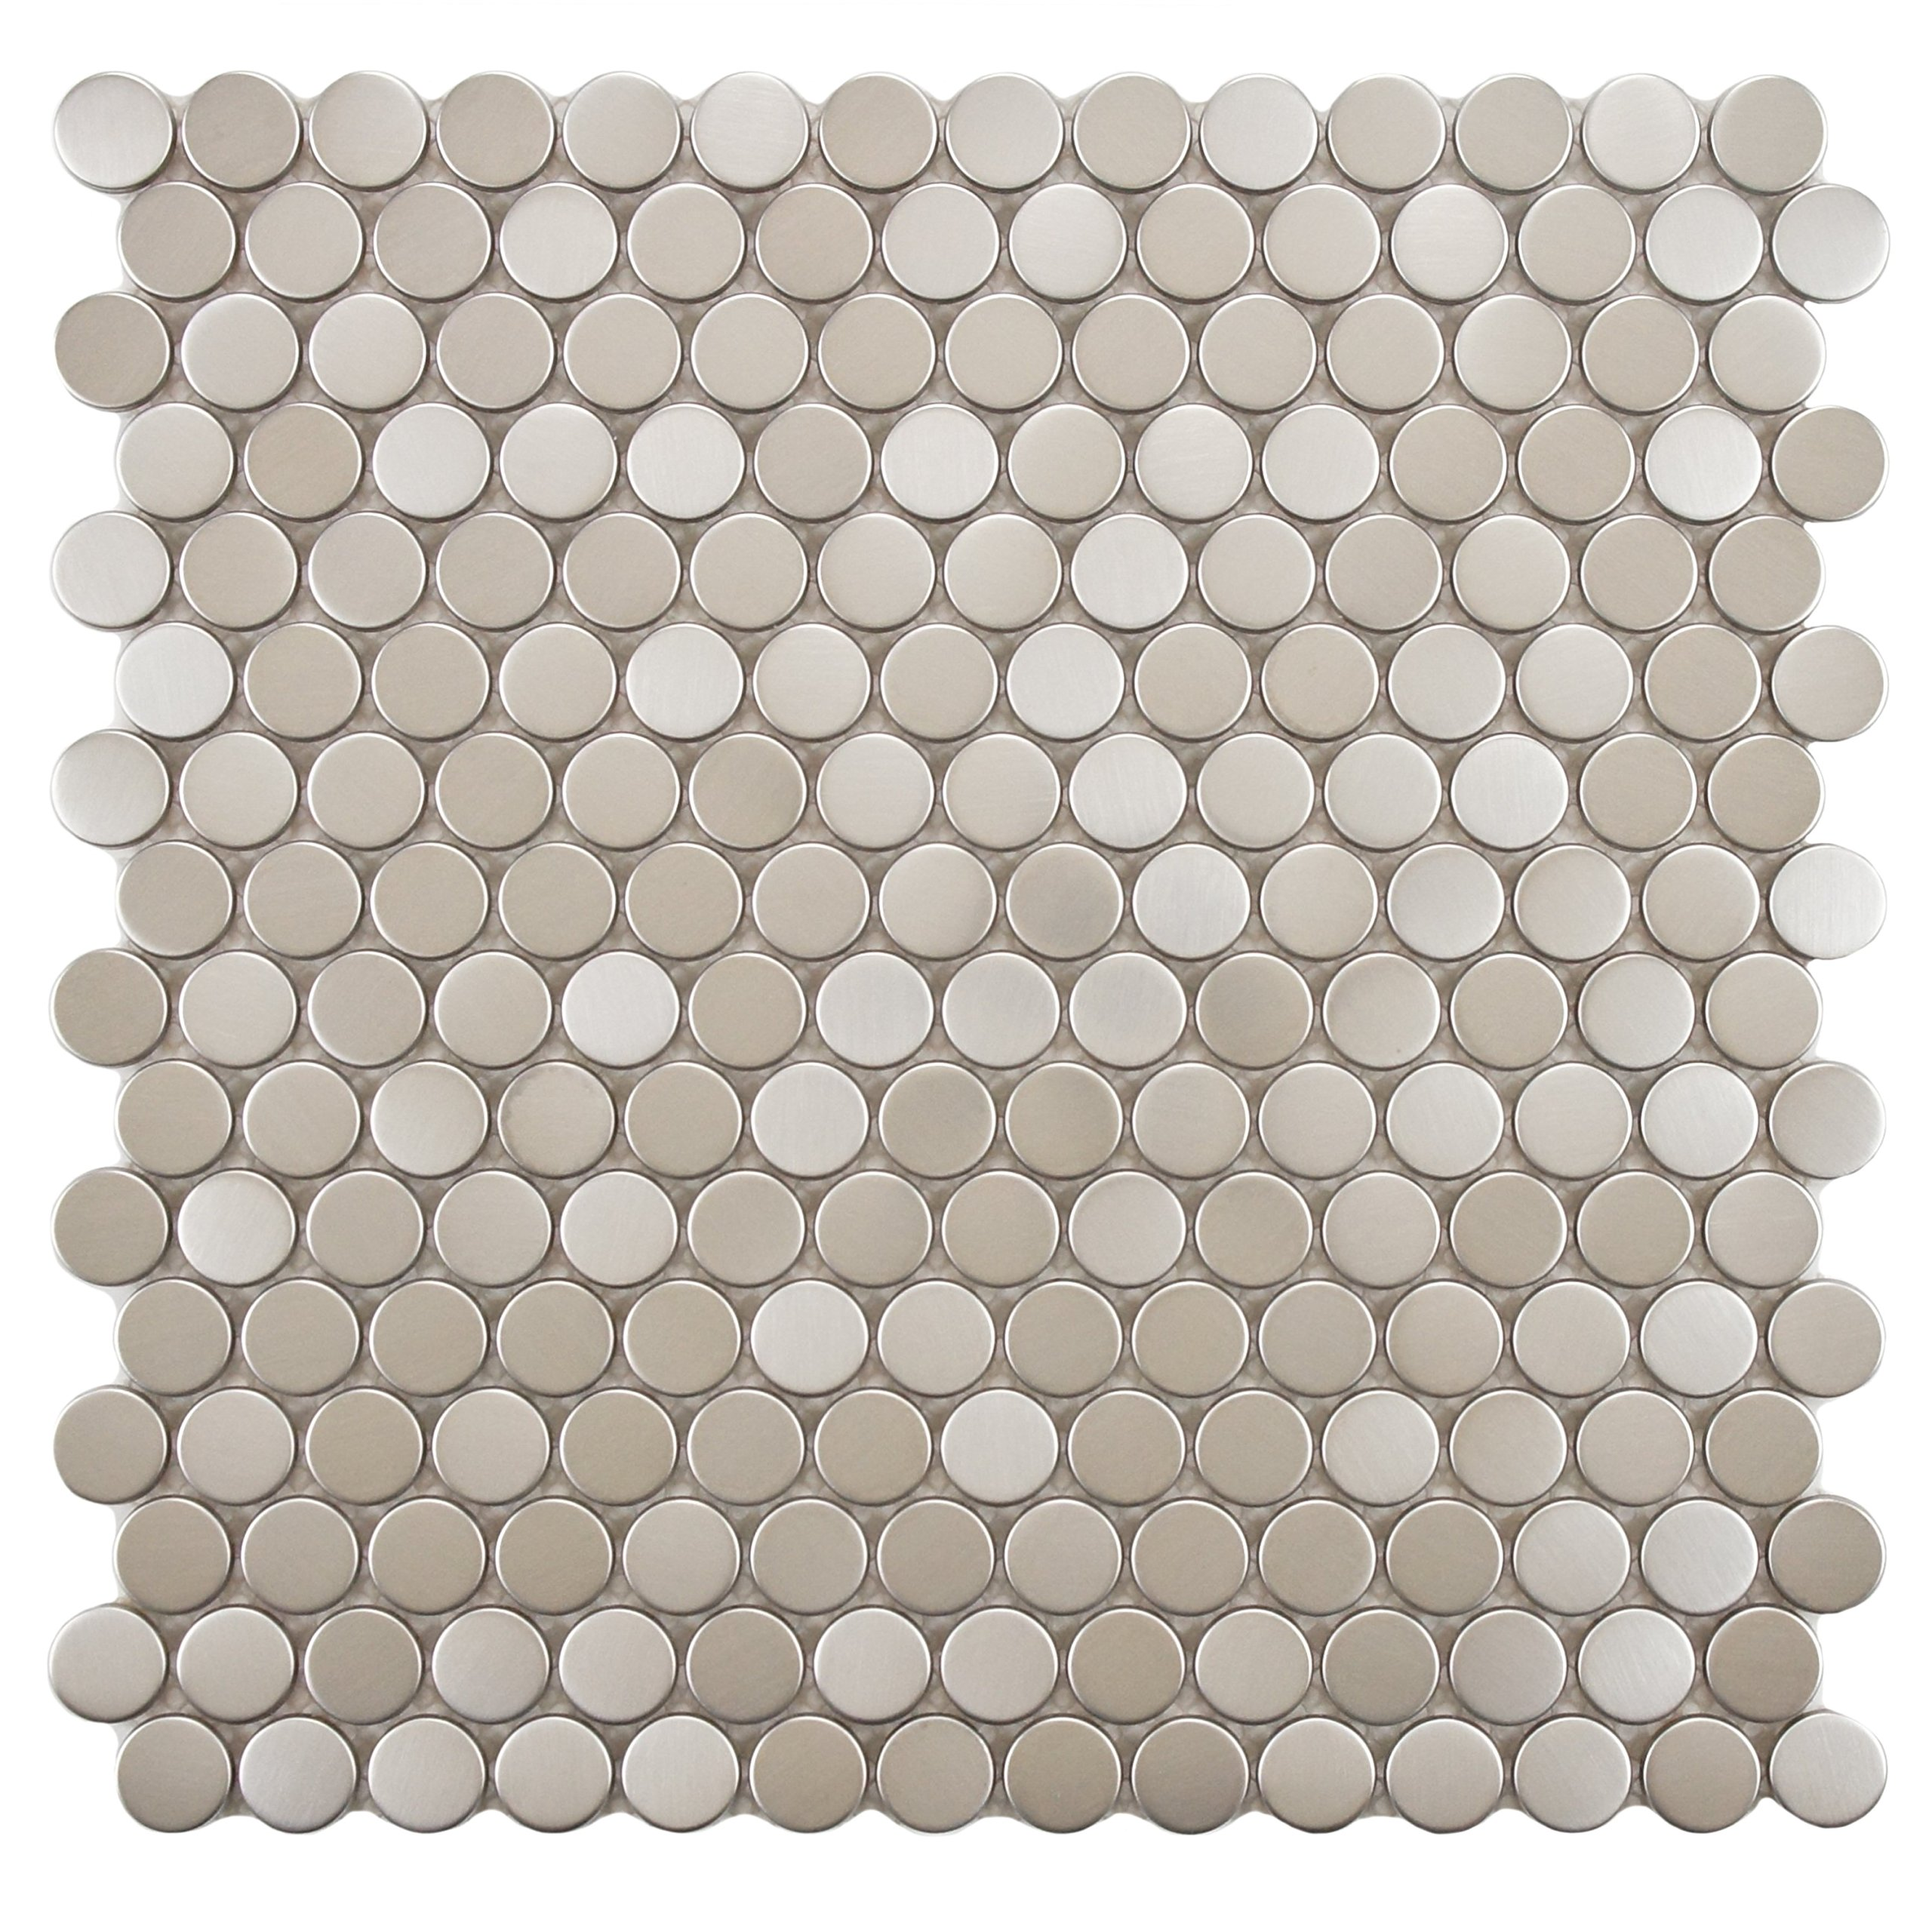 SomerTile MDXMPBST Metallic Penny Round Stainless Steel Over Porcelain Wall Tile, 11.75'' x 11.75'', Silver by SOMERTILE